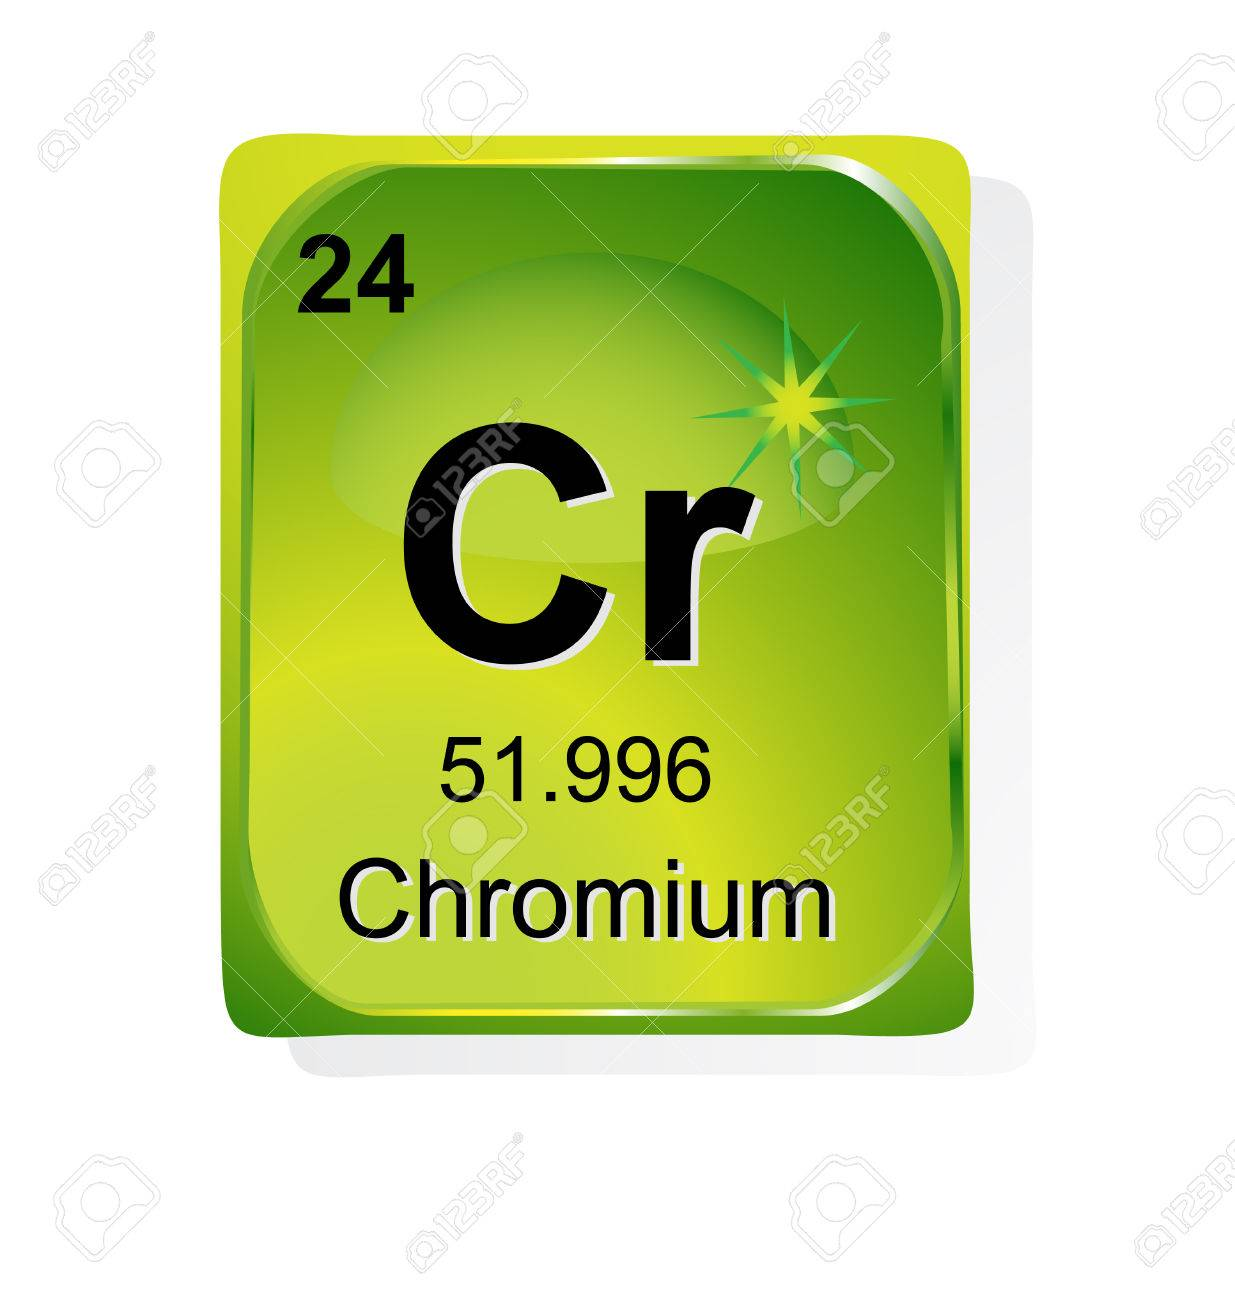 Chromium chemical element with atomic number symbol and weight chromium chemical element with atomic number symbol and weight stock vector 24509737 buycottarizona